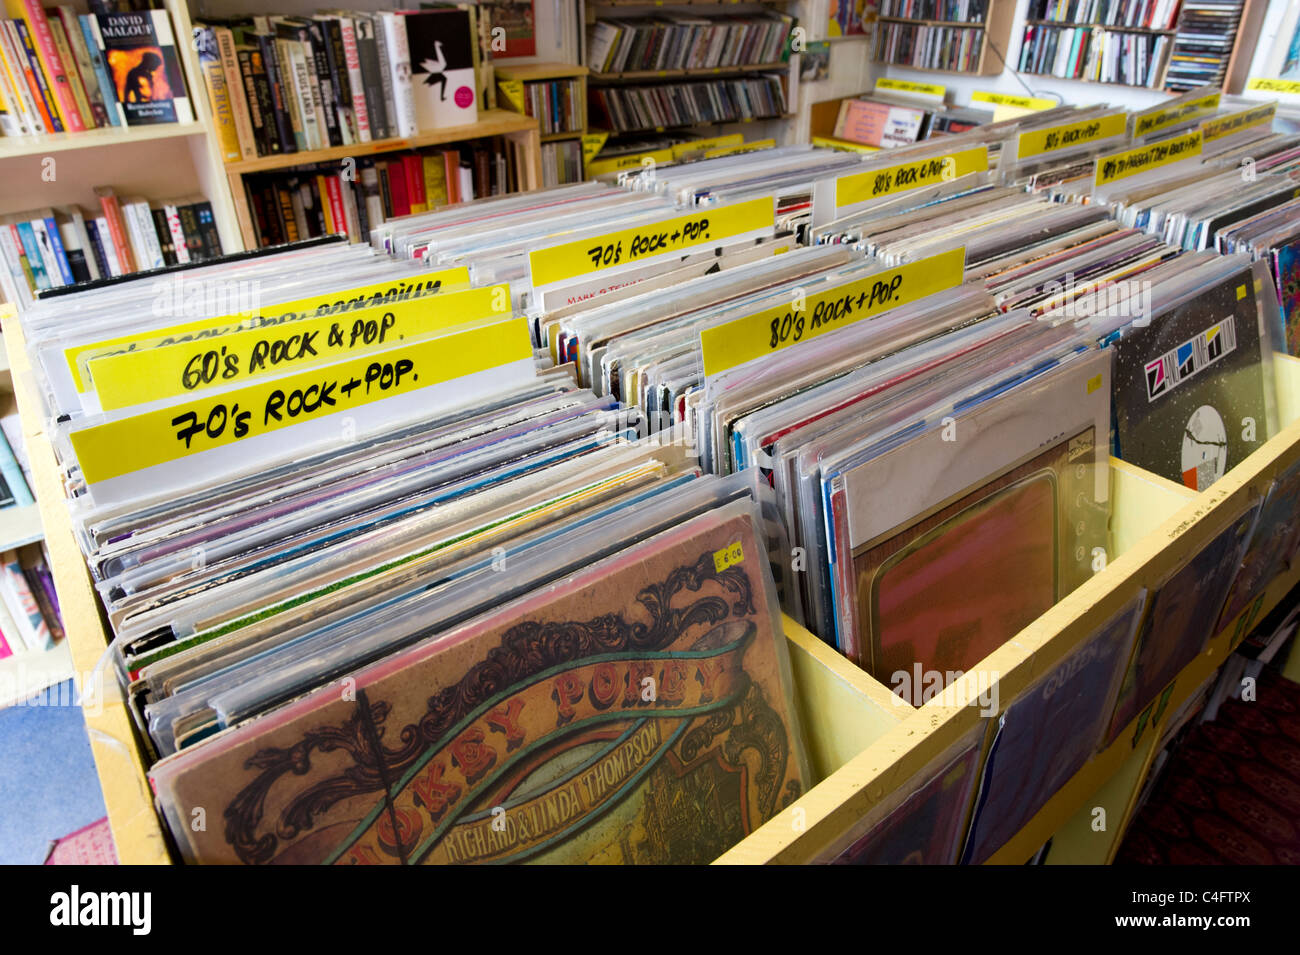 Miscellaneous secondhand vinyl records in shop, London, UK - Stock Image